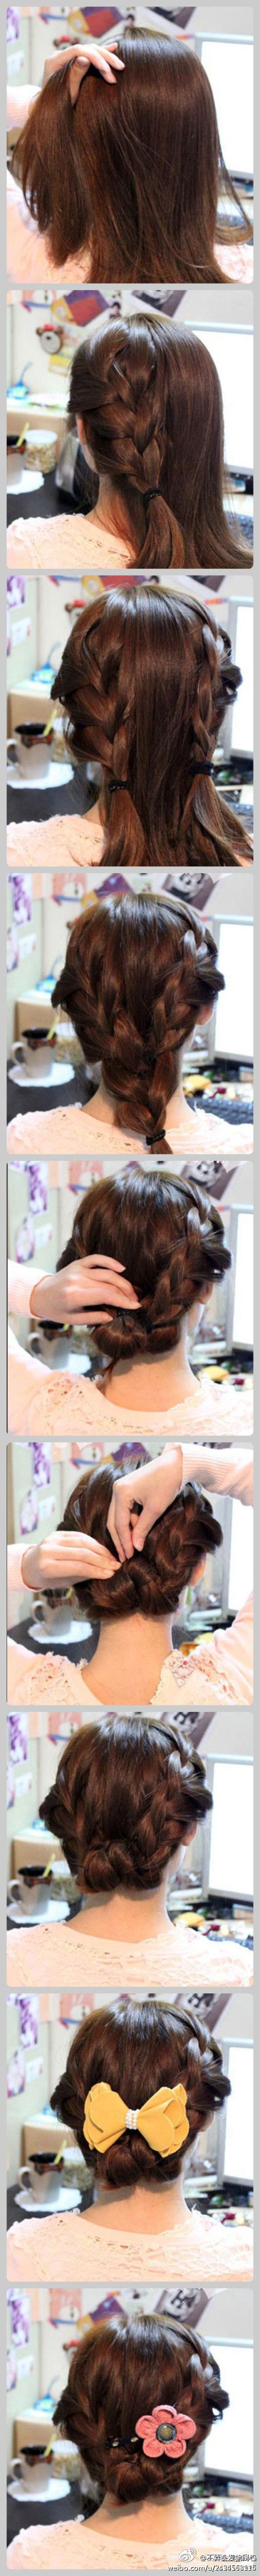 best hairstyle images on pinterest hairdresser beauty tips and